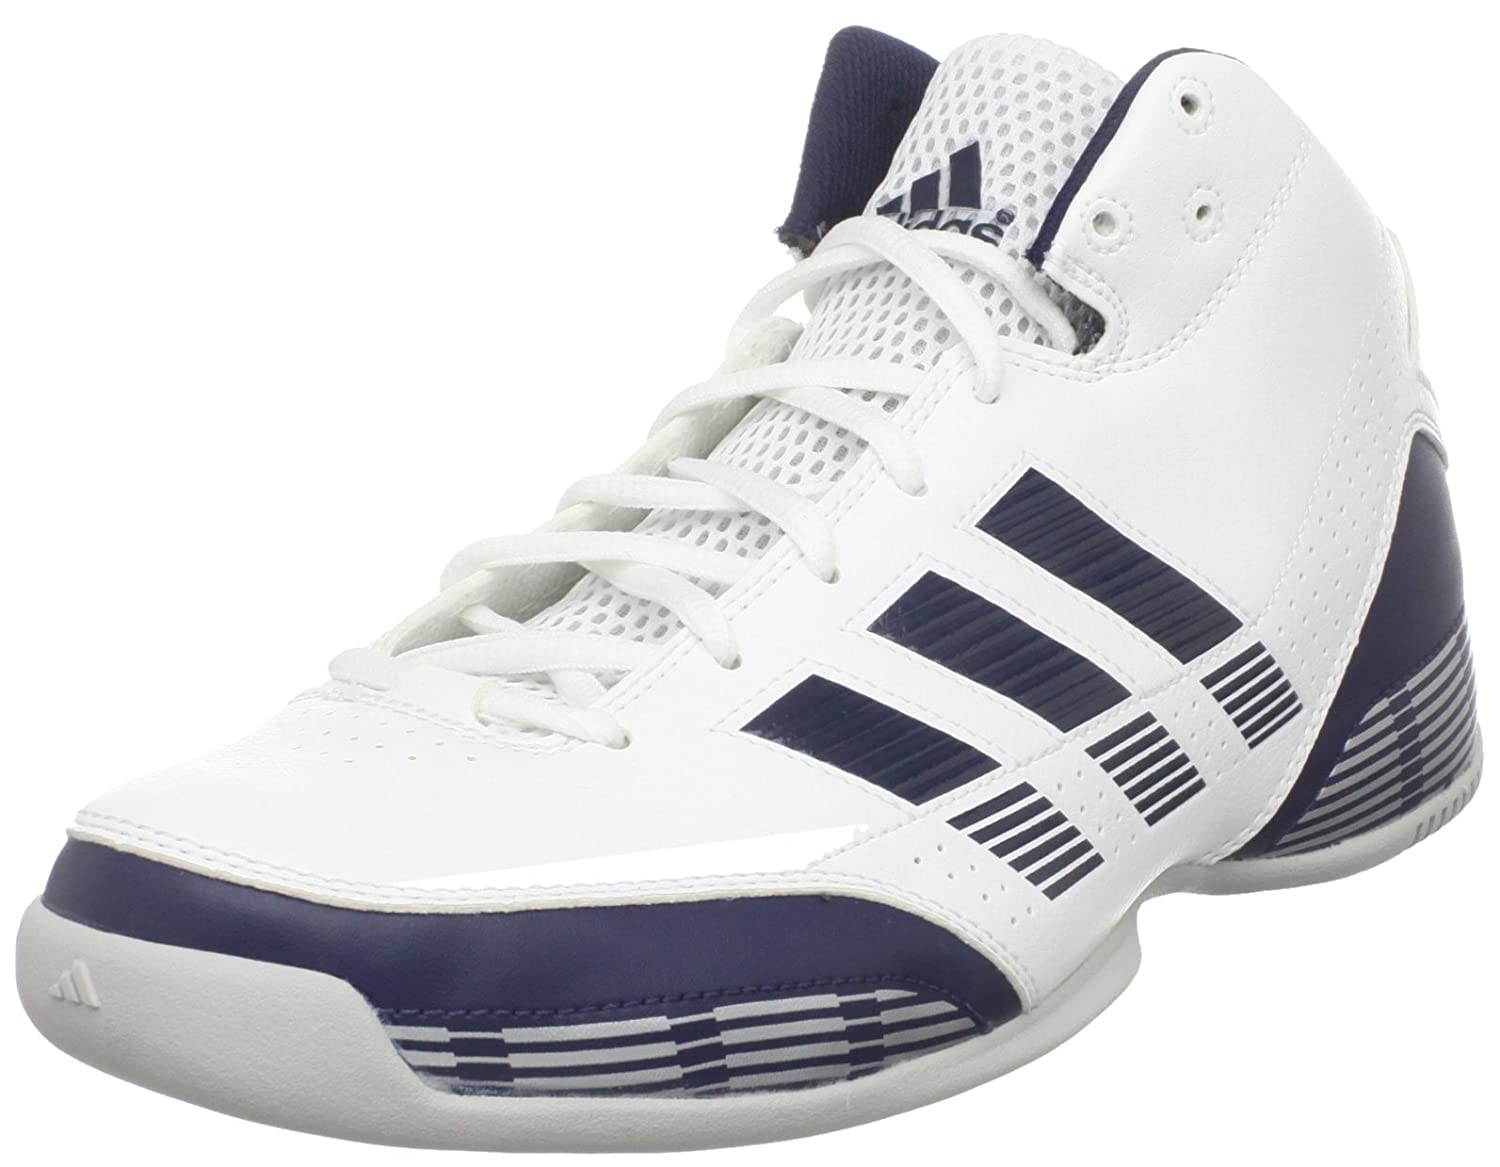 Amazon.com | adidas Men's 3 Series Light Basketball Shoe, Running  White/Dark Indigo/Metallic Silver, 6.5 D US | Running